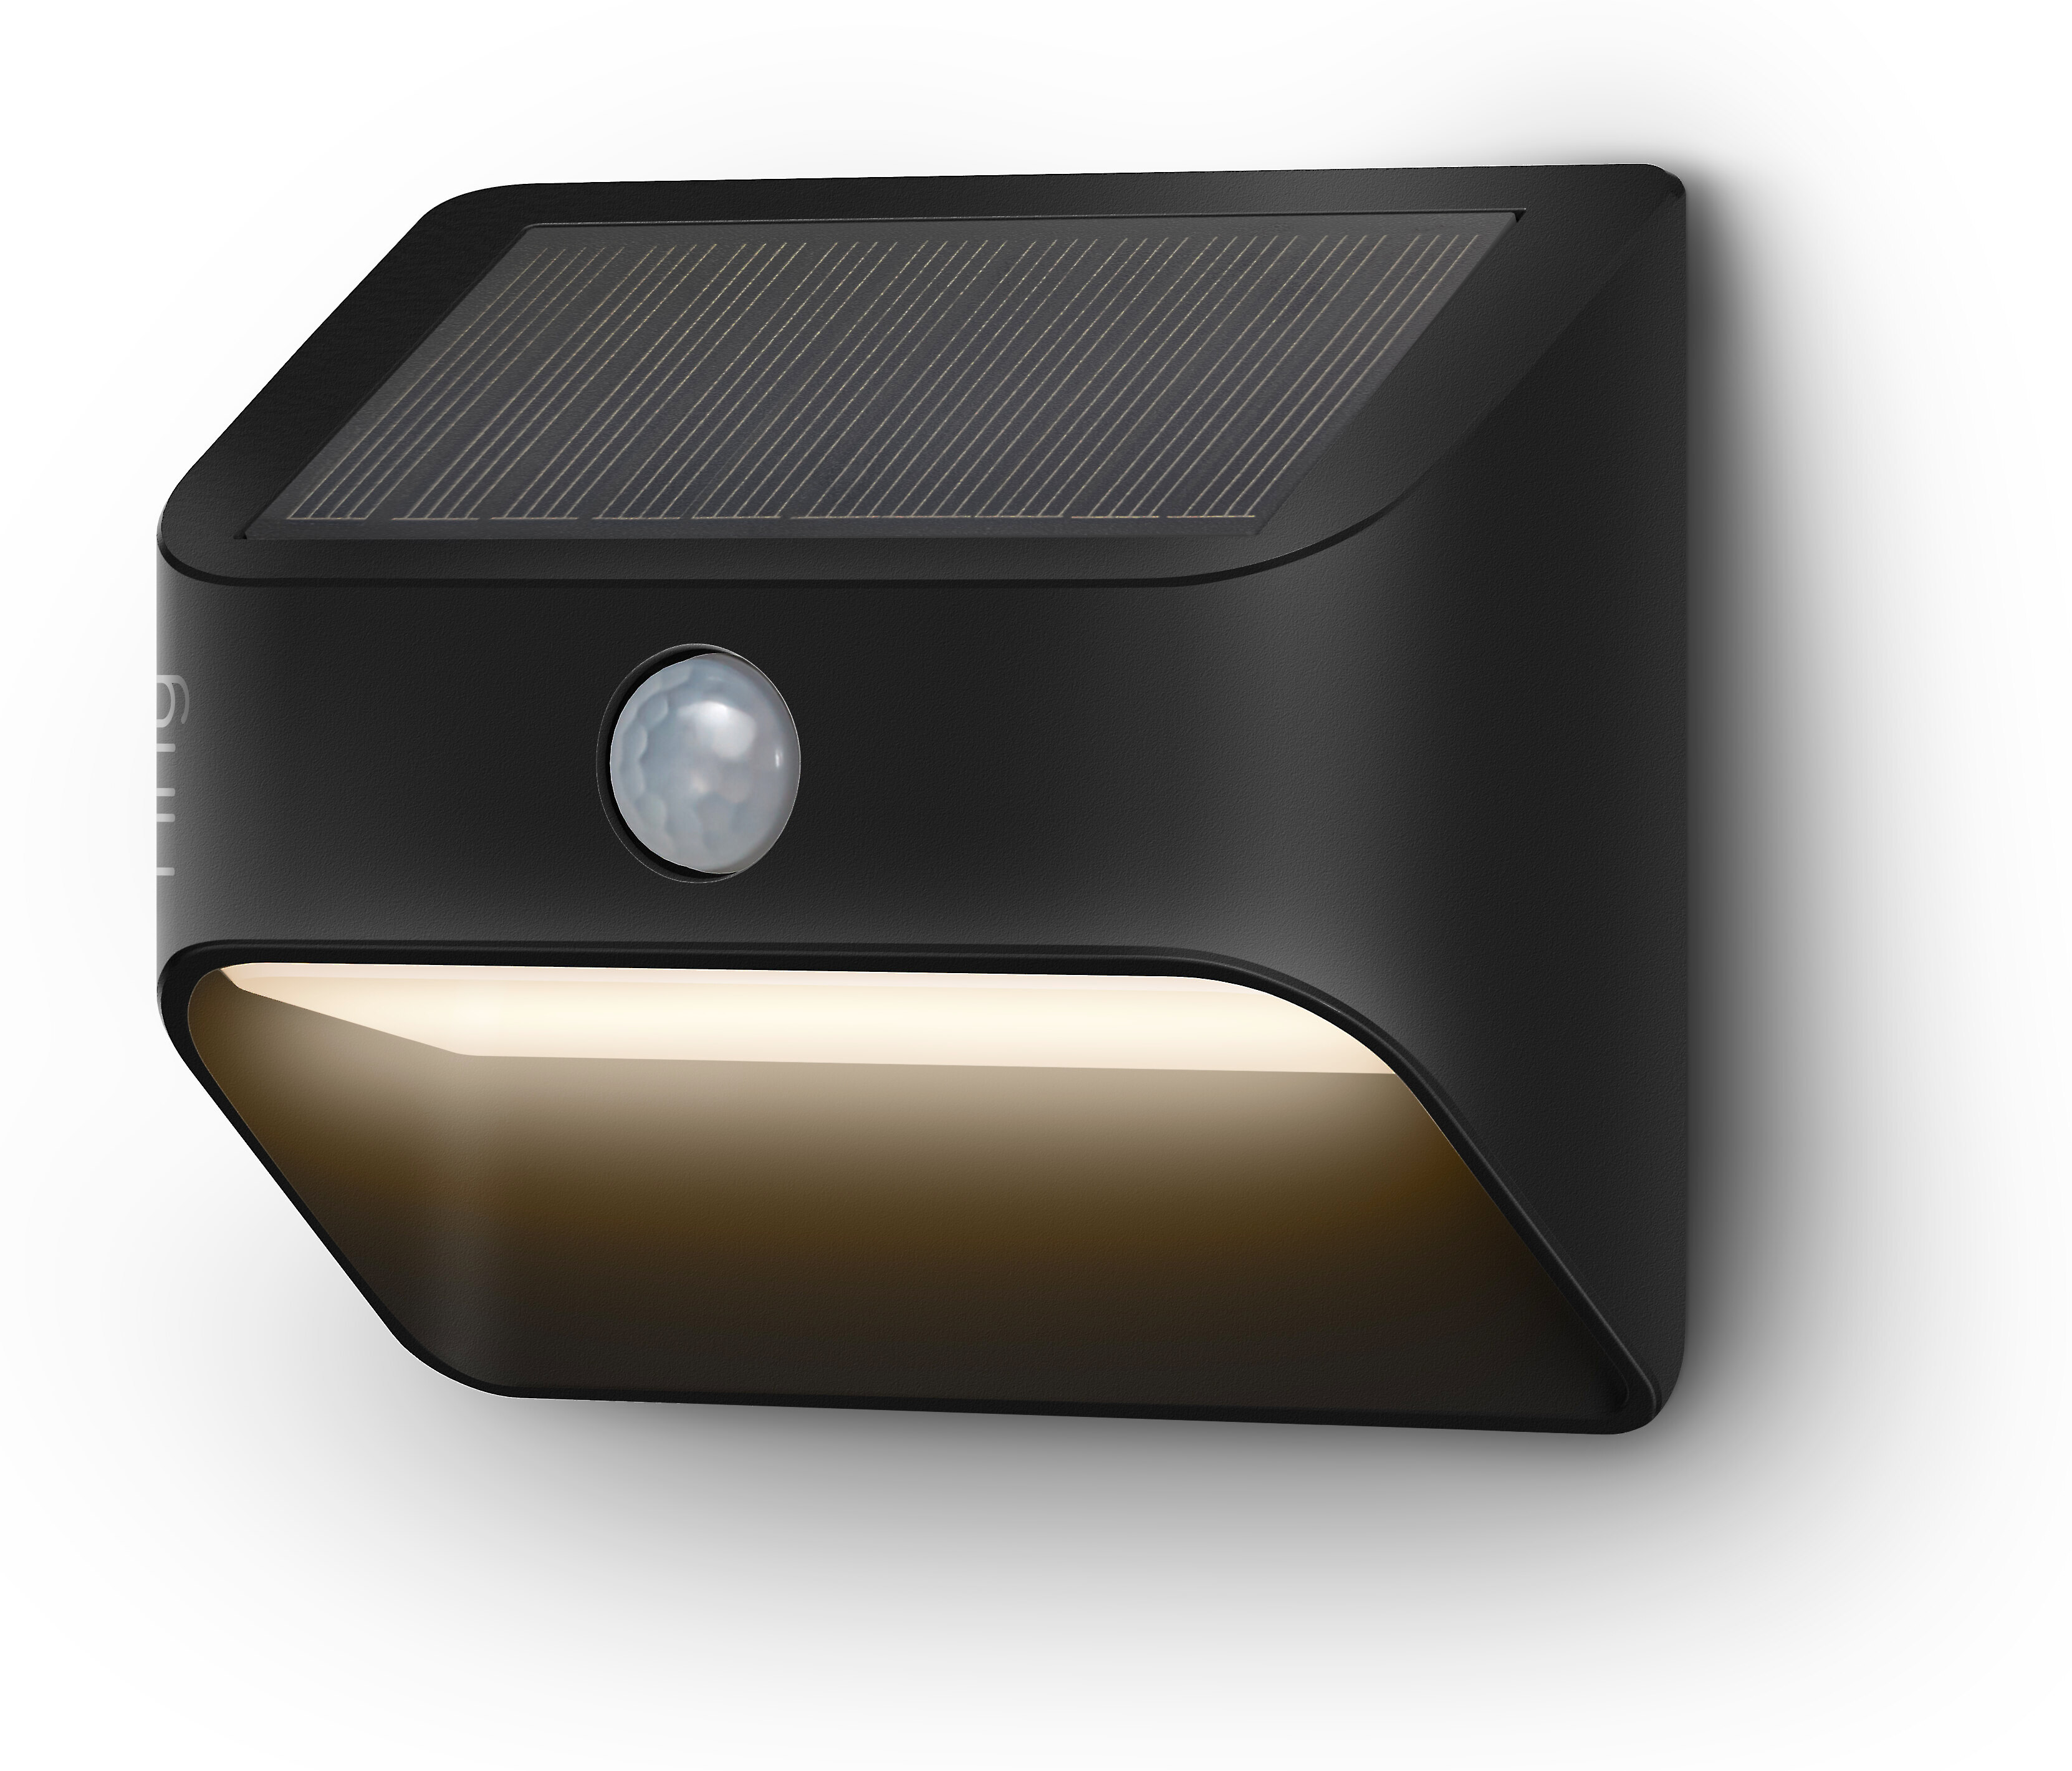 ring smart lighting solar steplight black solar powered motion activated smart light for stairs and walkways at crutchfield